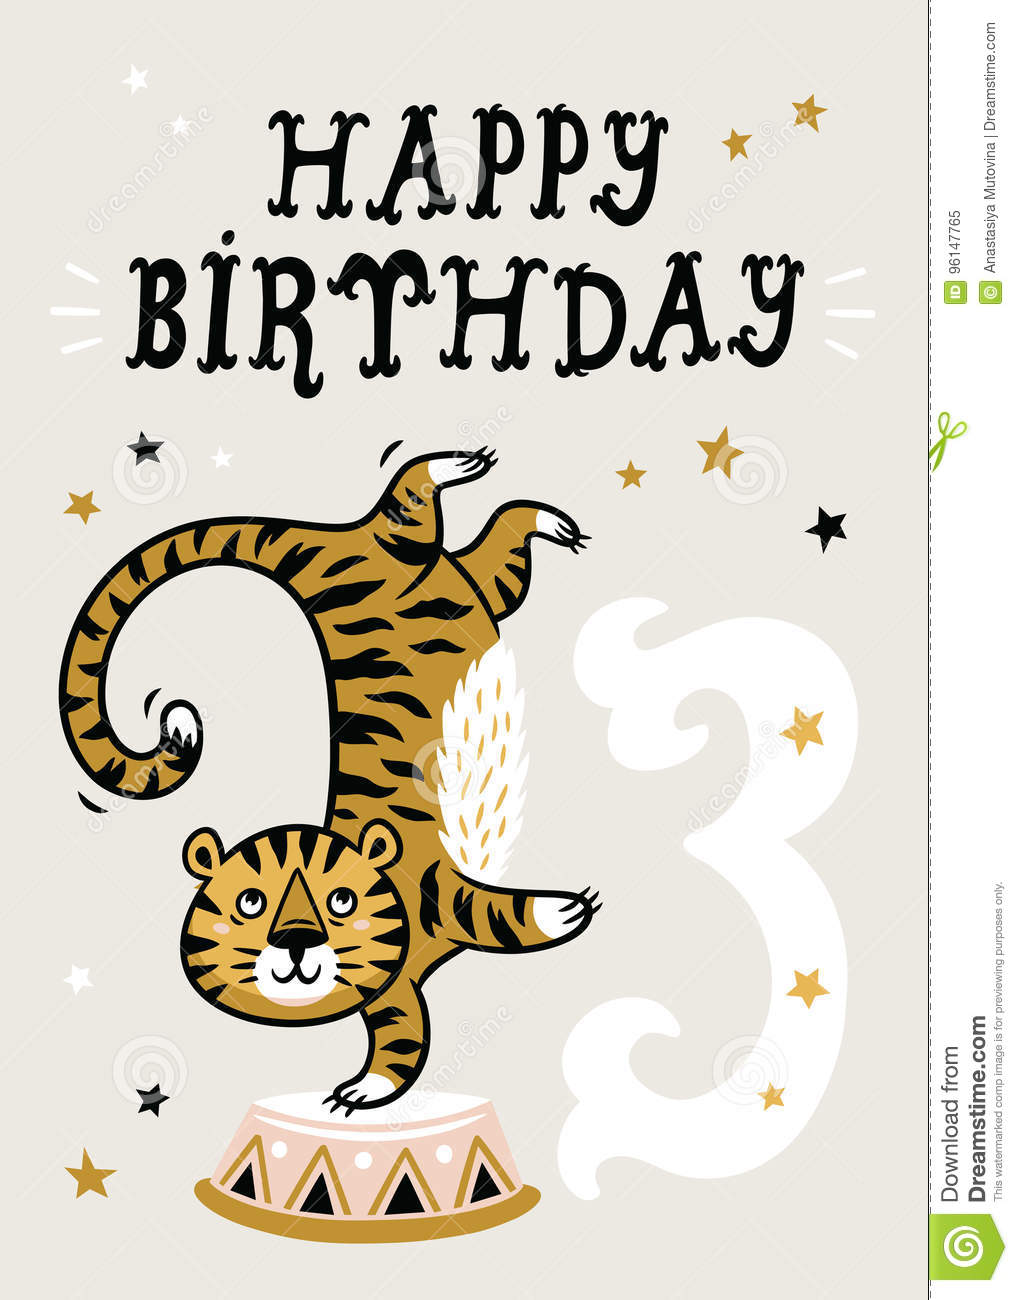 3 Year Baby Birthday Card Circus Party With Tiger Vector Illustration